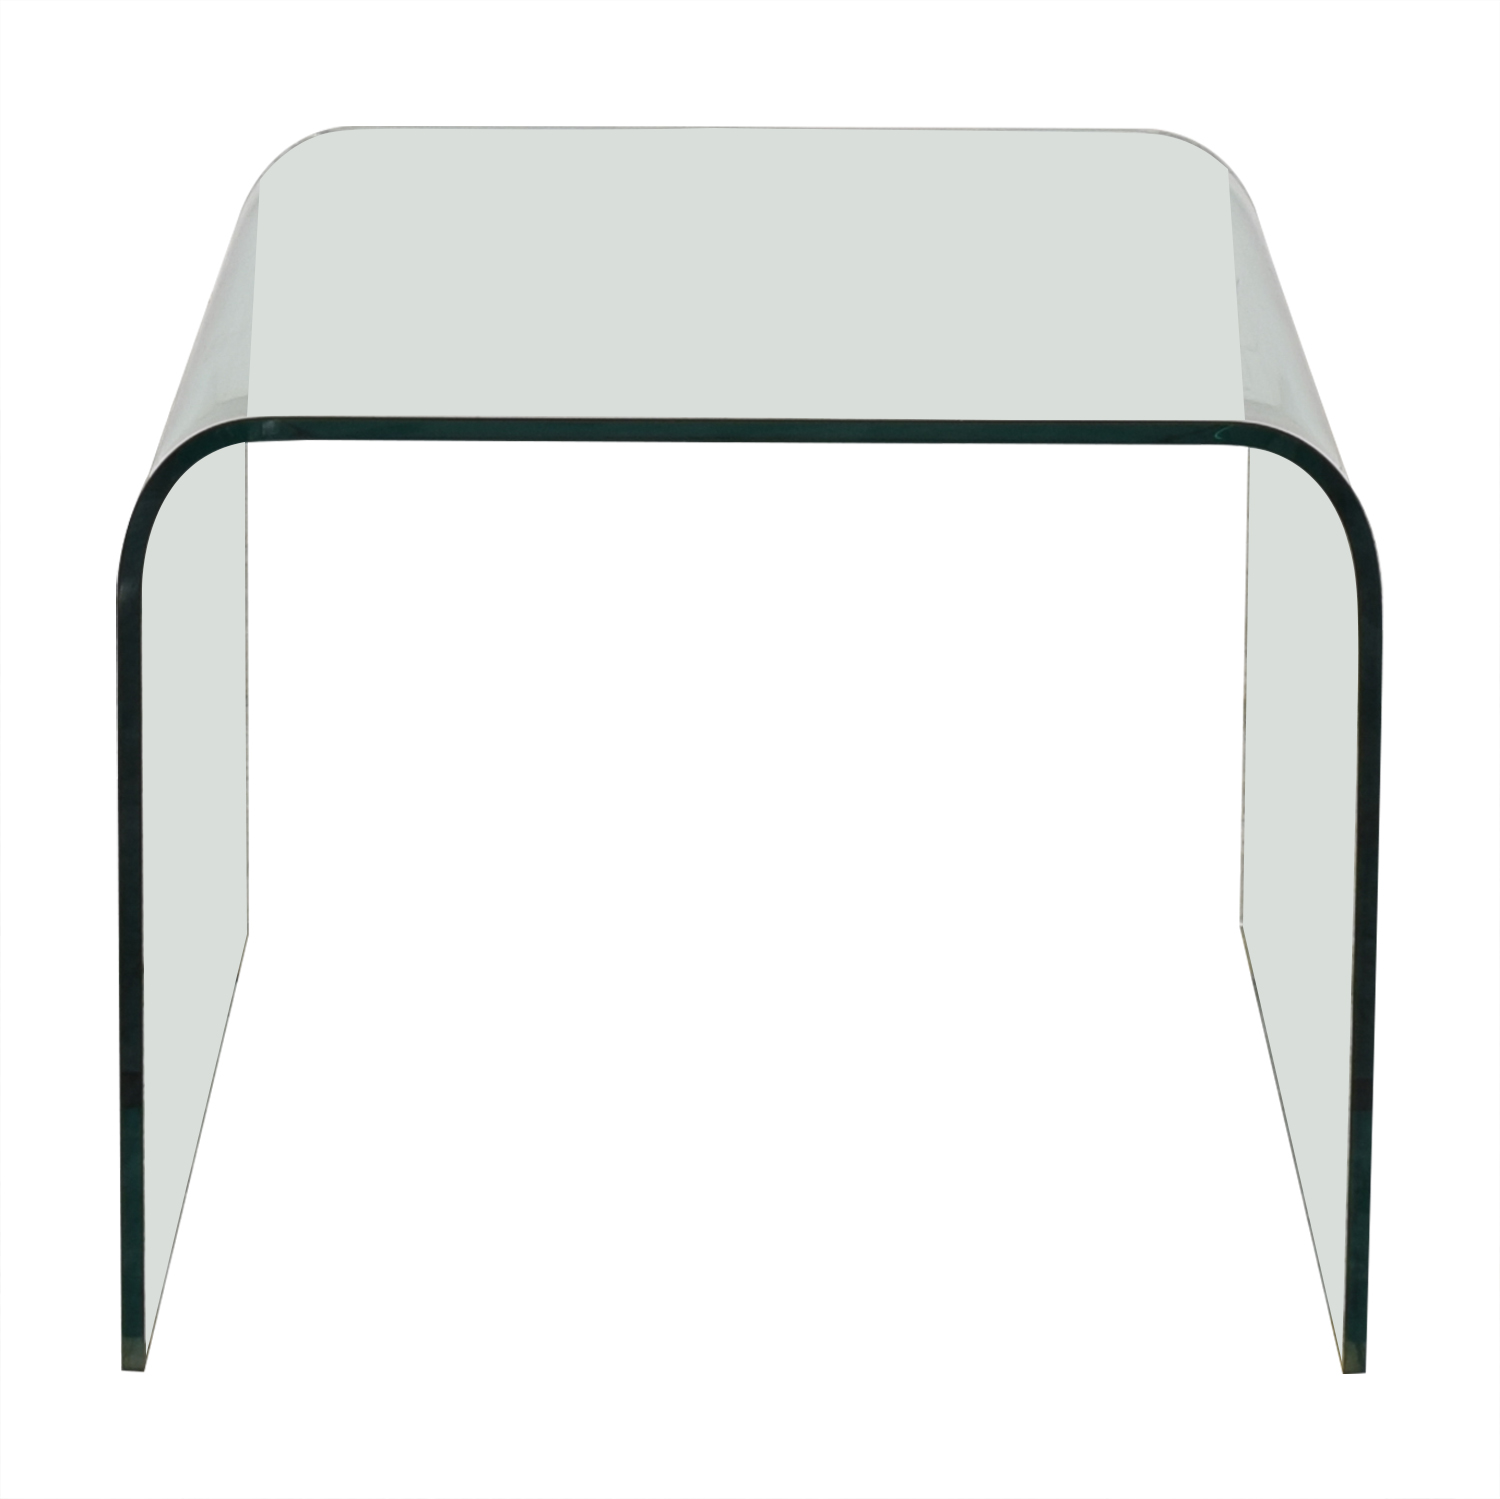 NCA Design NCA Design Bent Glass Side Table Tables